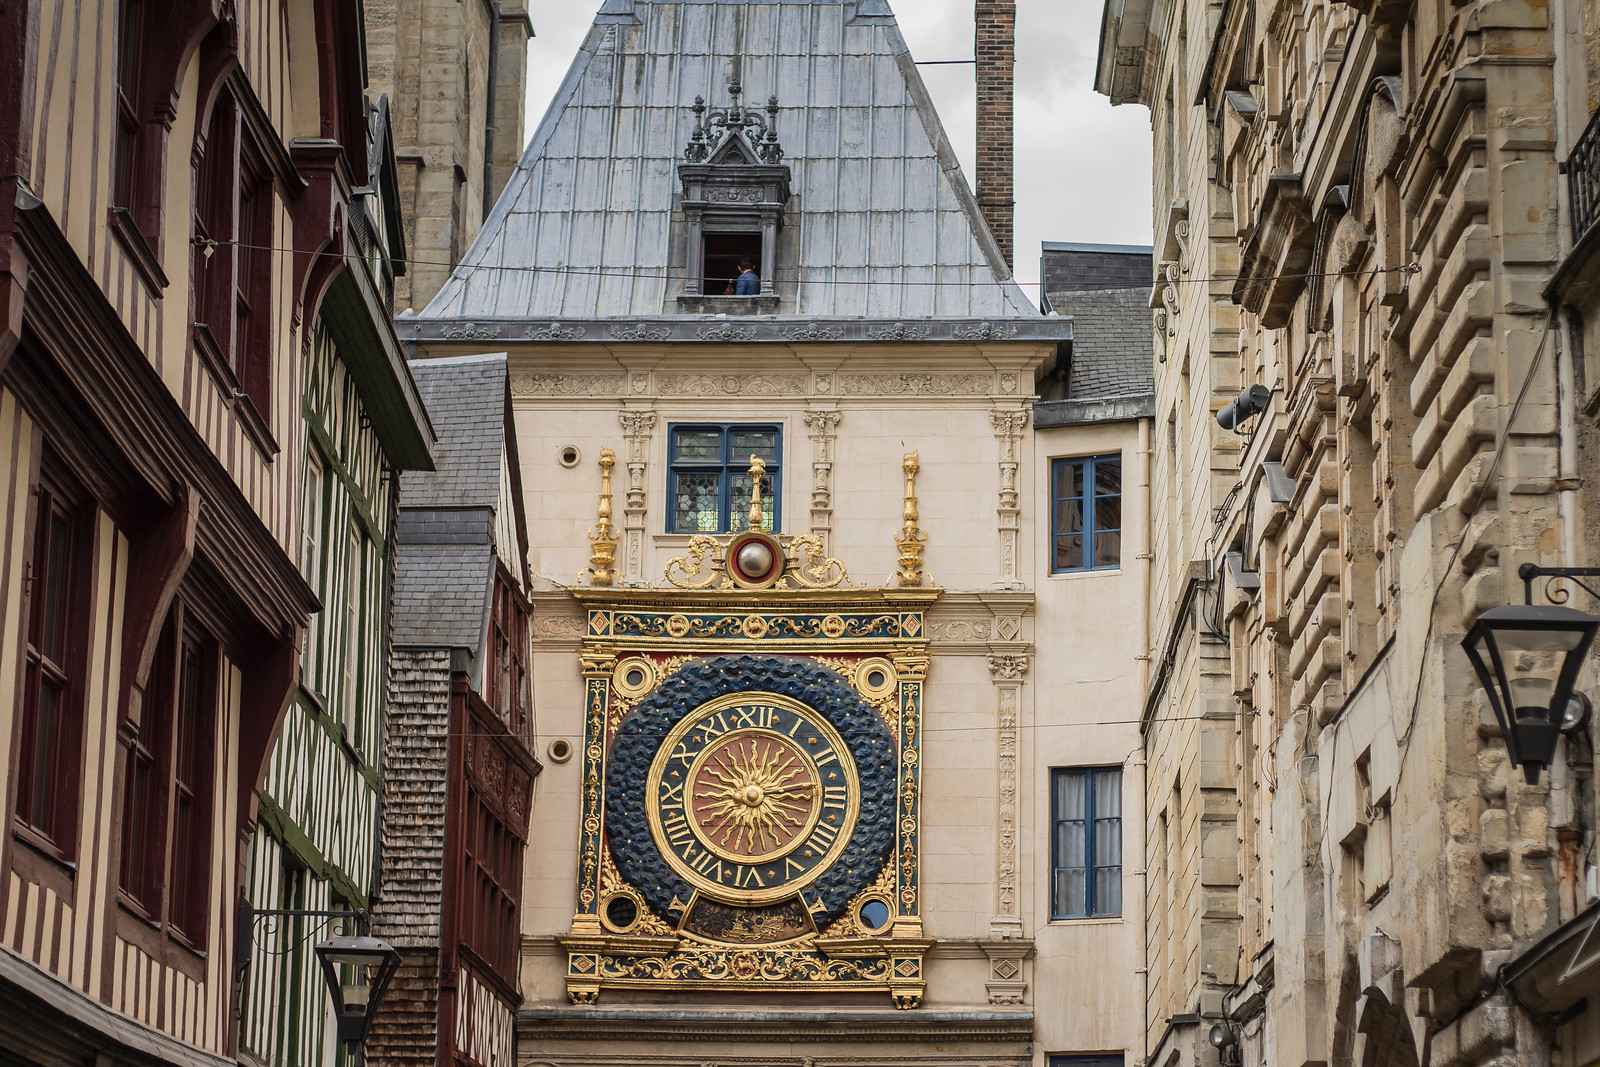 Things to do in Rouen - Gros-Horloge - The oldest working clock mechanism in Europe